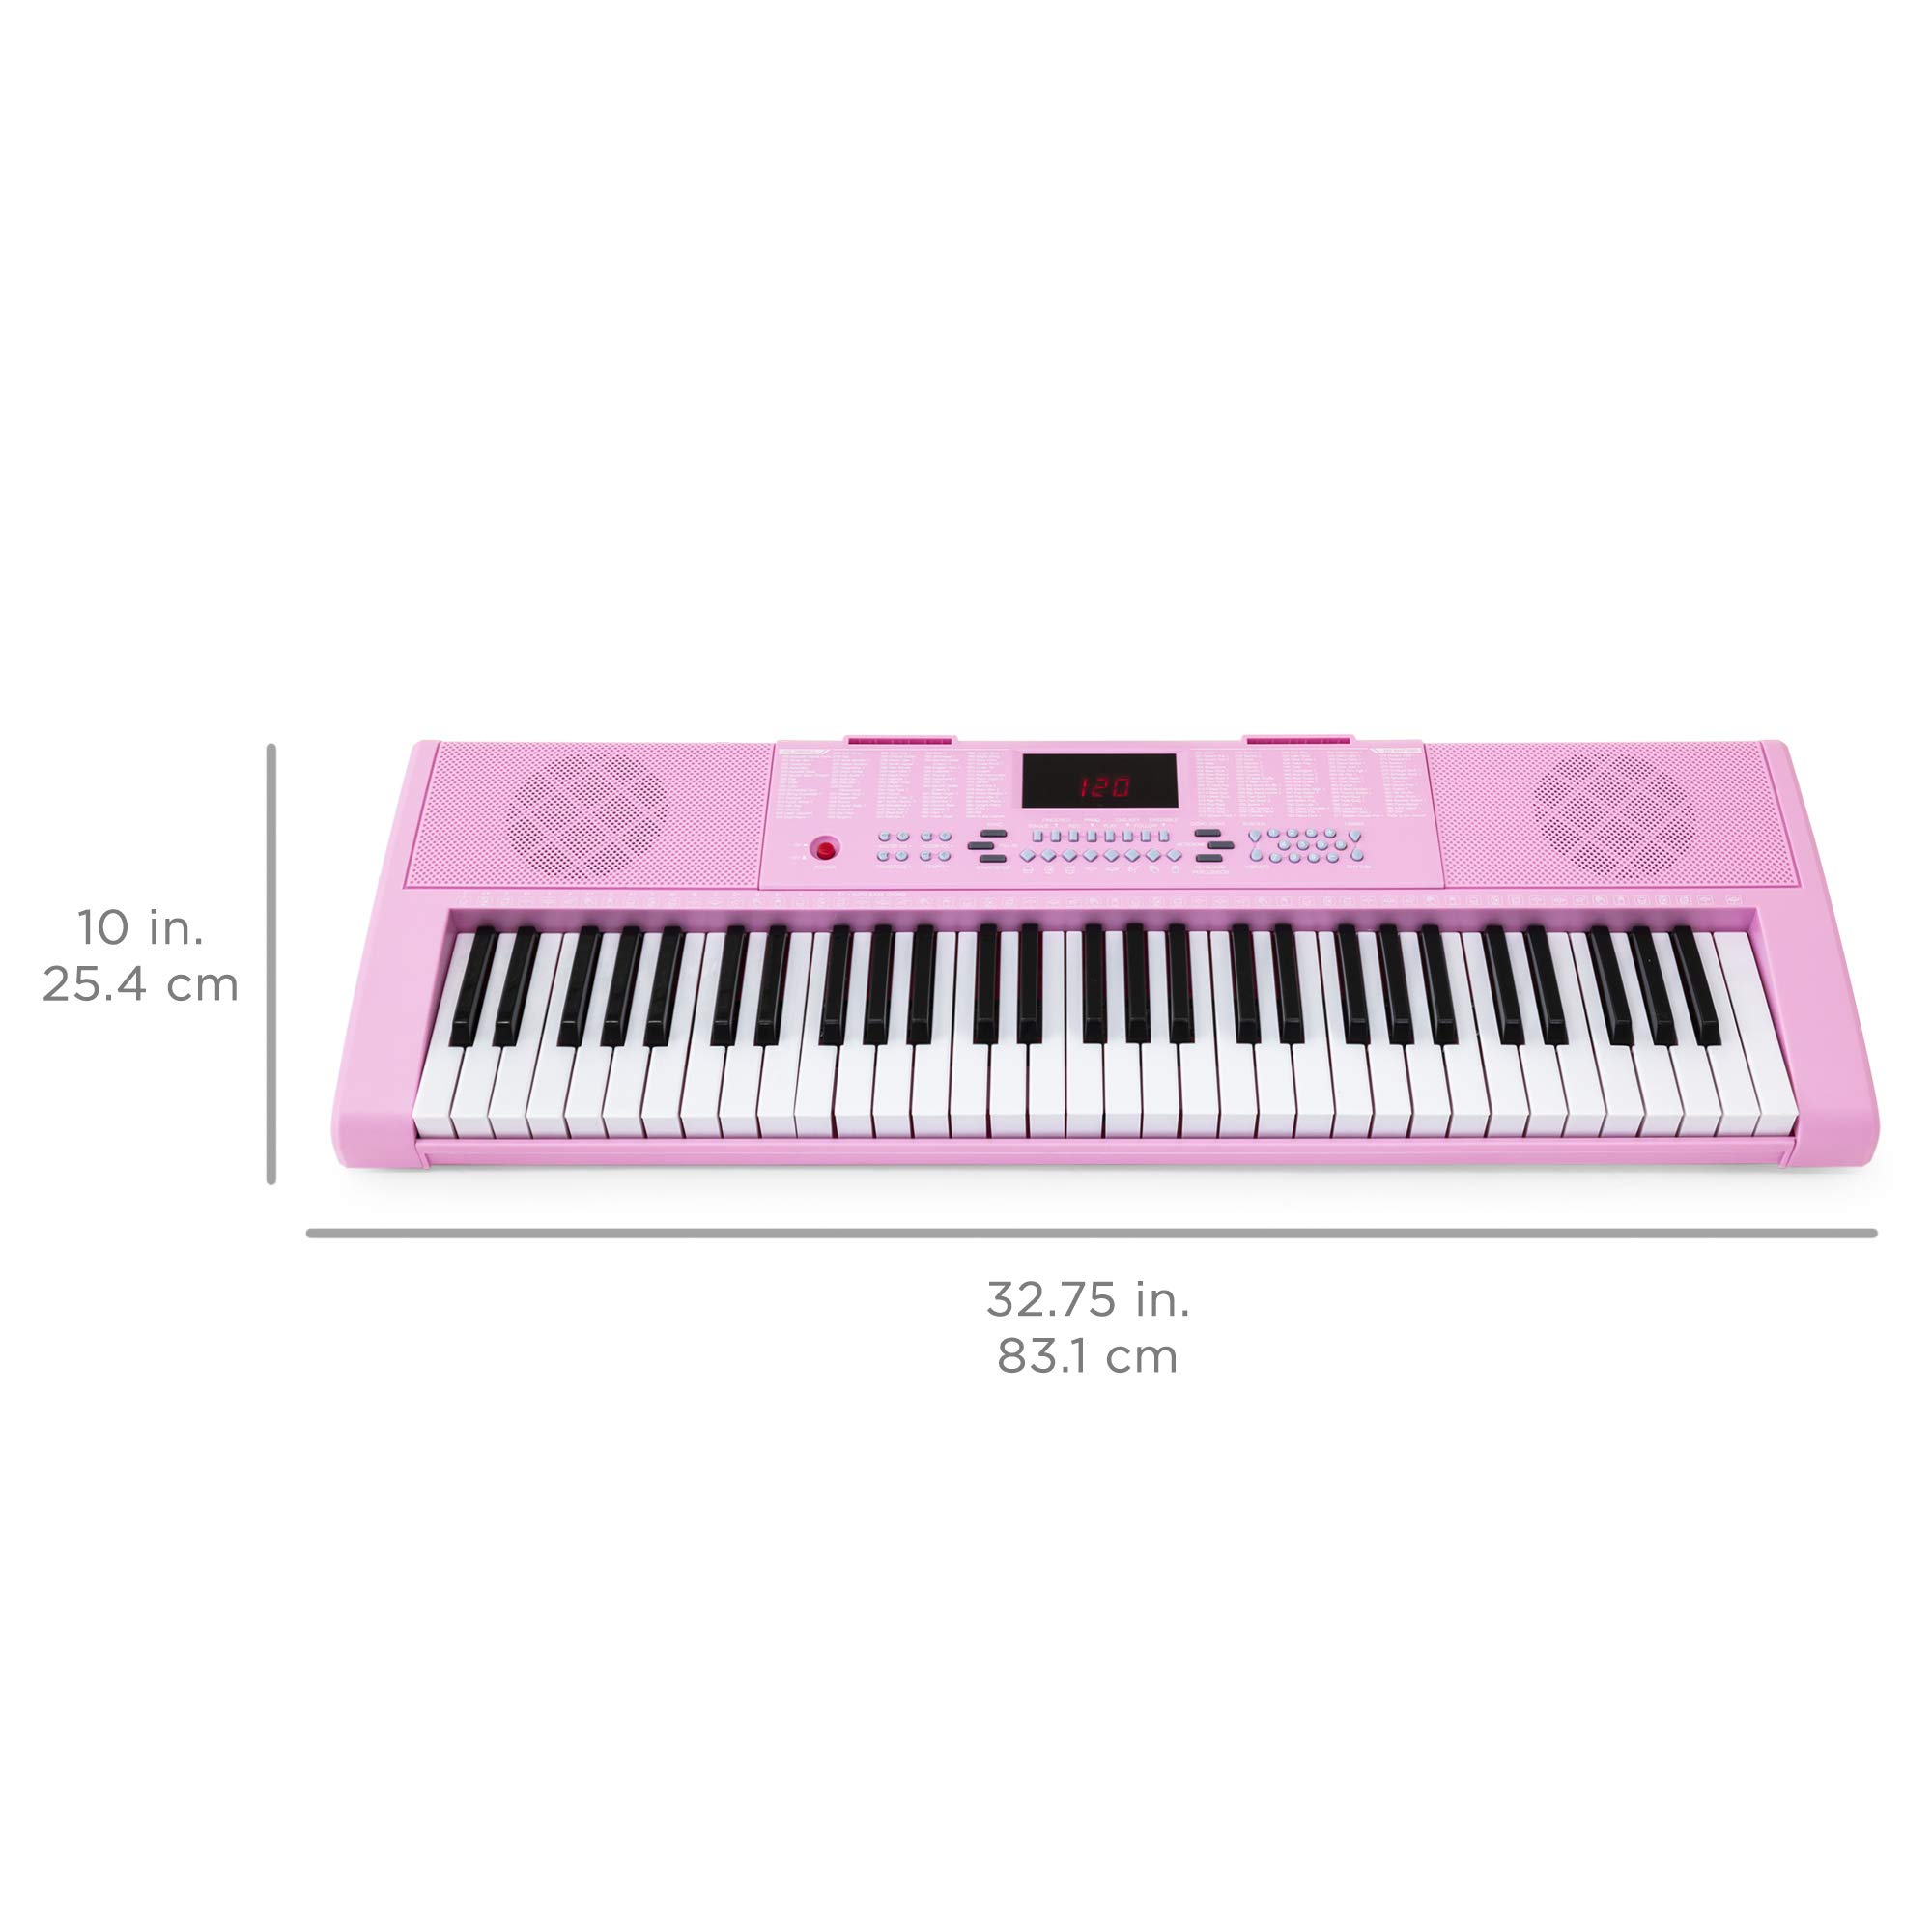 Best Choice Products 61-Key Portable Electronic Keyboard Piano with LED Screen, Record & Playback Function, Microphone, Headphone Jack (Pink) by Best Choice Products (Image #6)